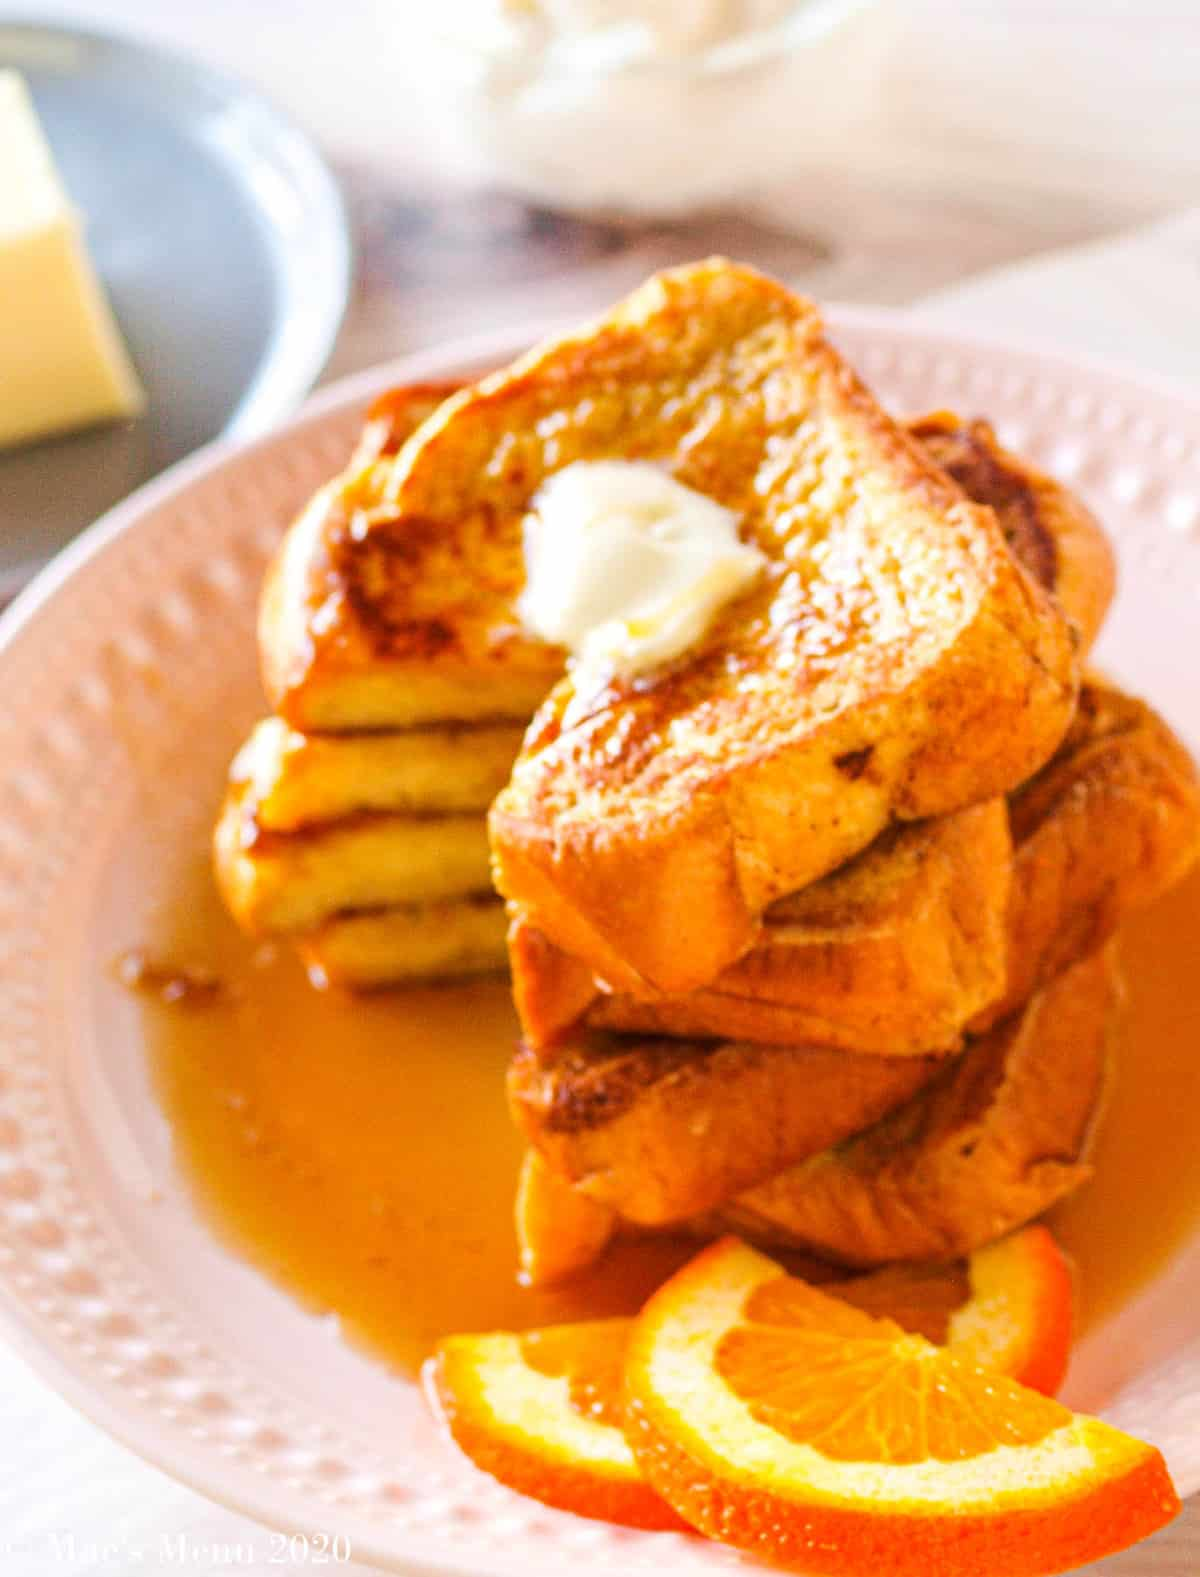 A side angle shot of a large stack of brioche french toast with a wedge cut out